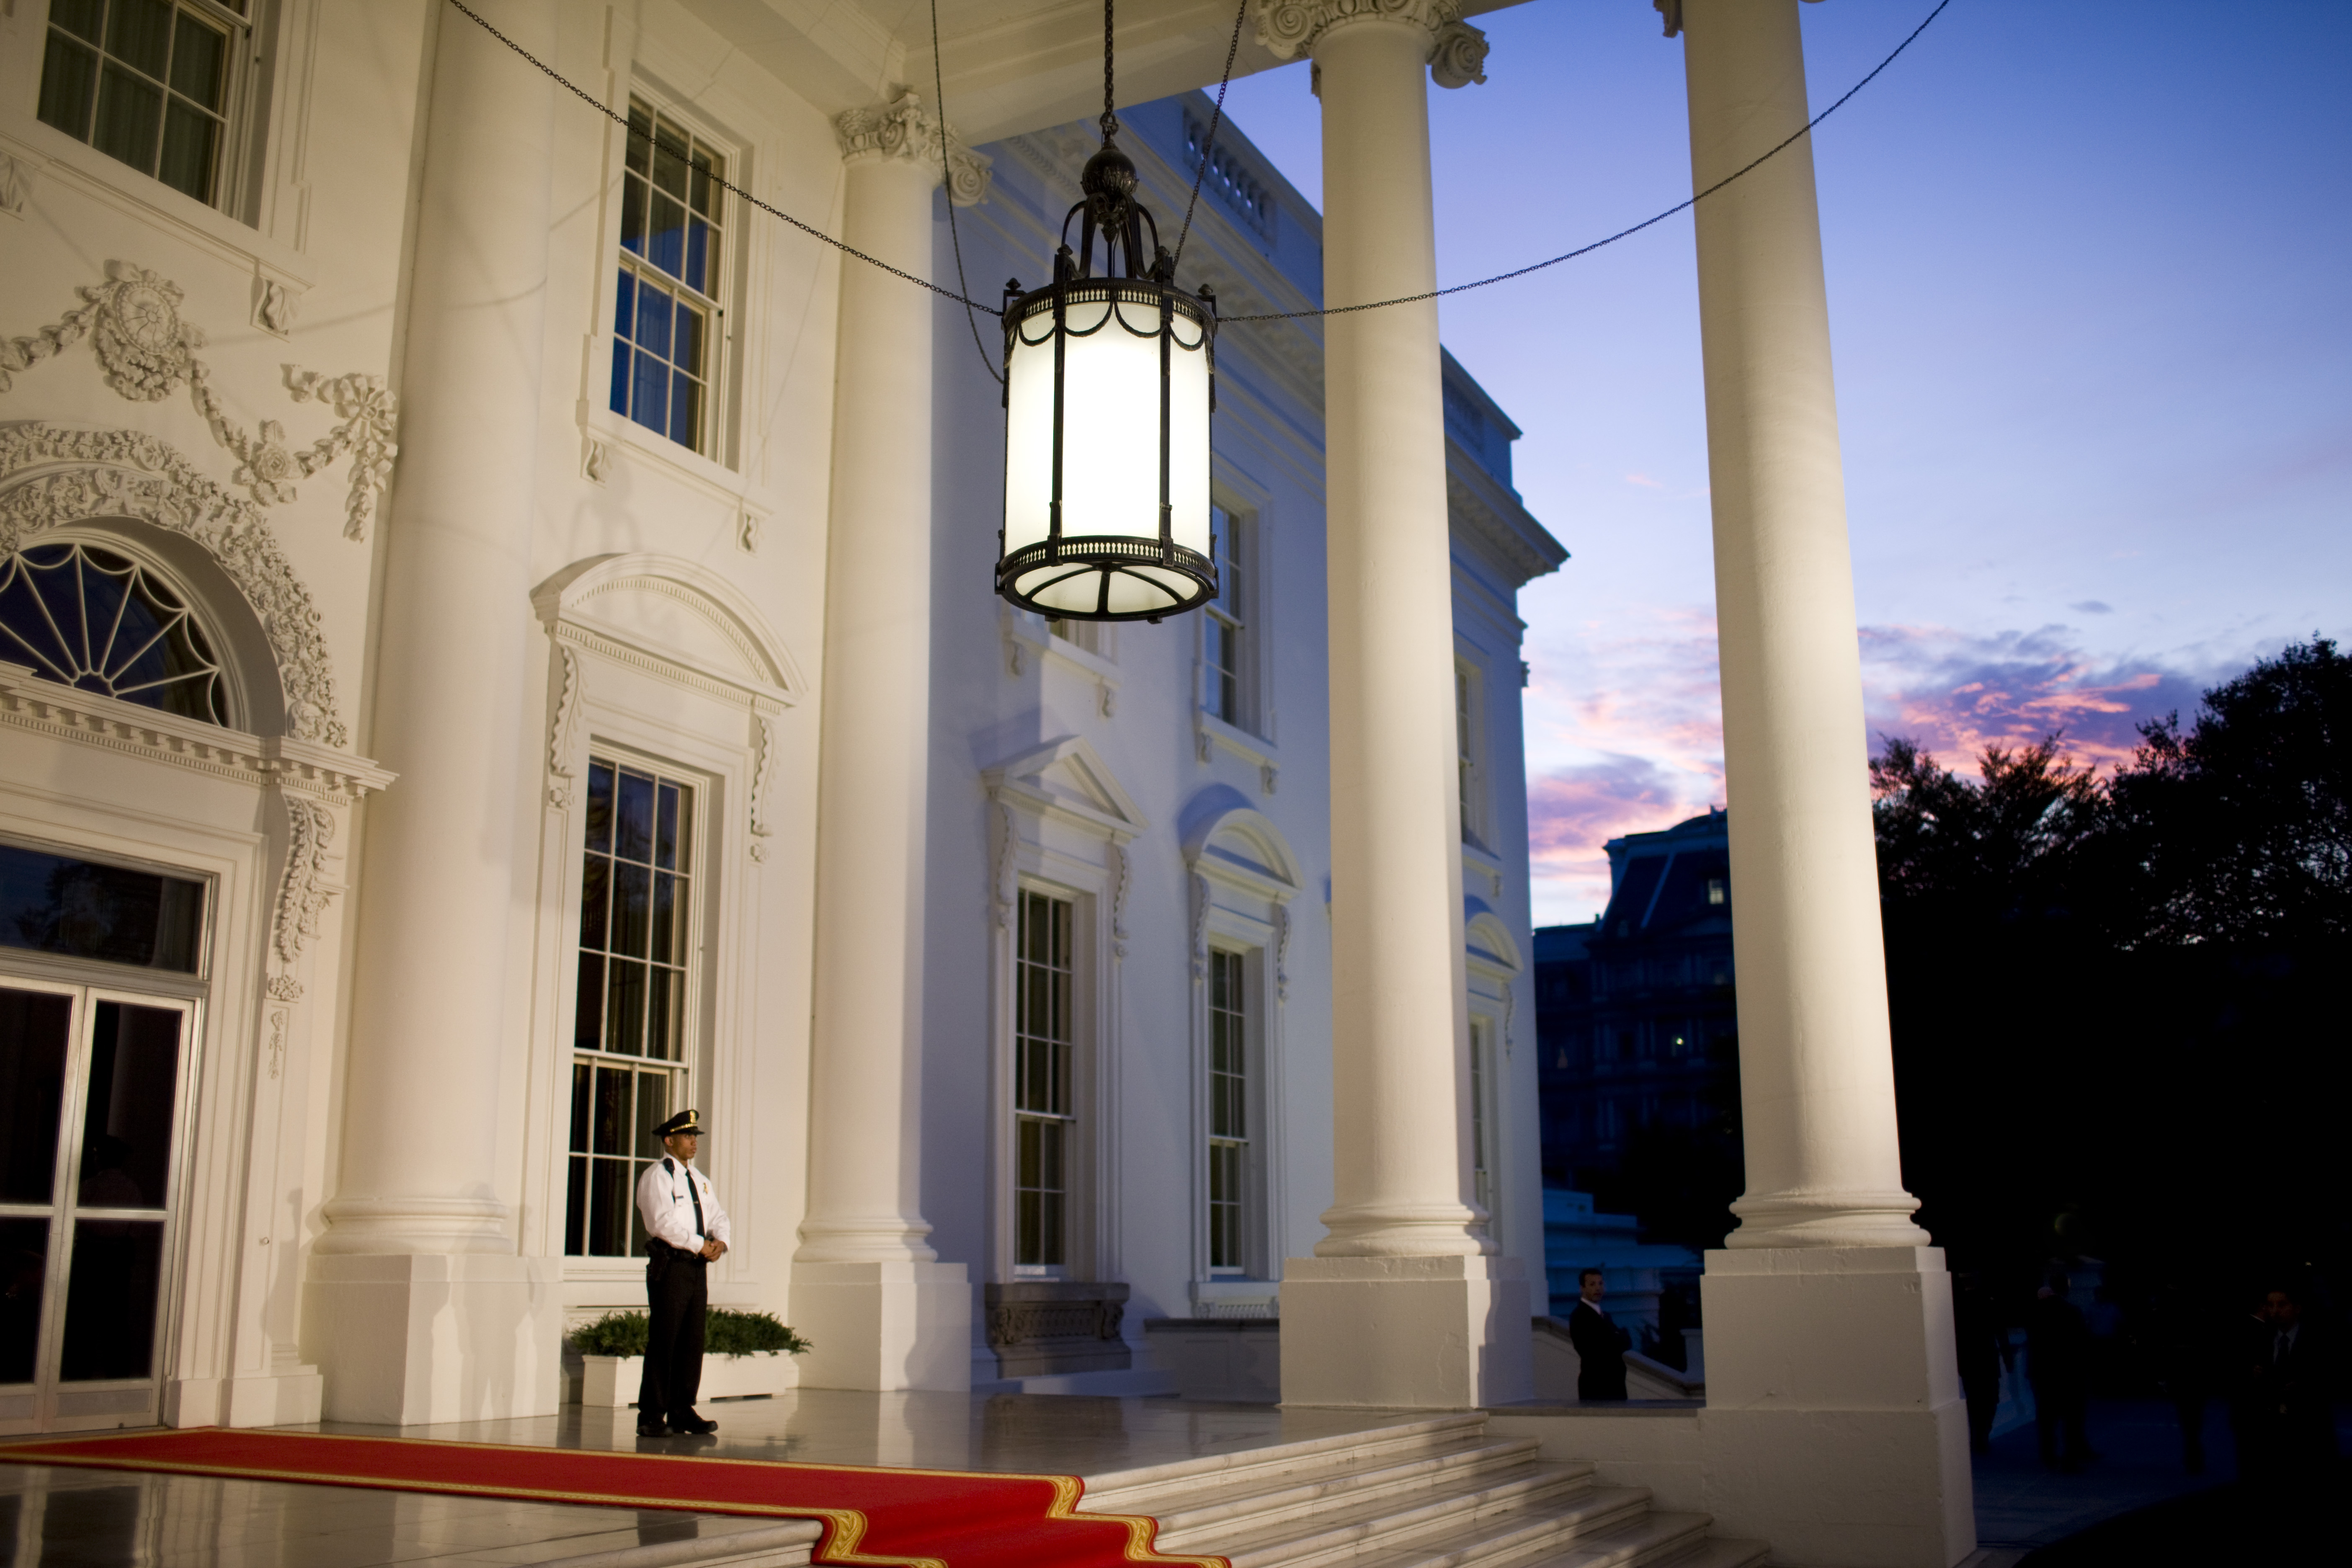 A uniformed secret service agent waits for the arrival of President Bush and Italy's Prime Minister Silvio Berlusconi on the North Portico of the White House in Washington on Oct. 13, 2008.